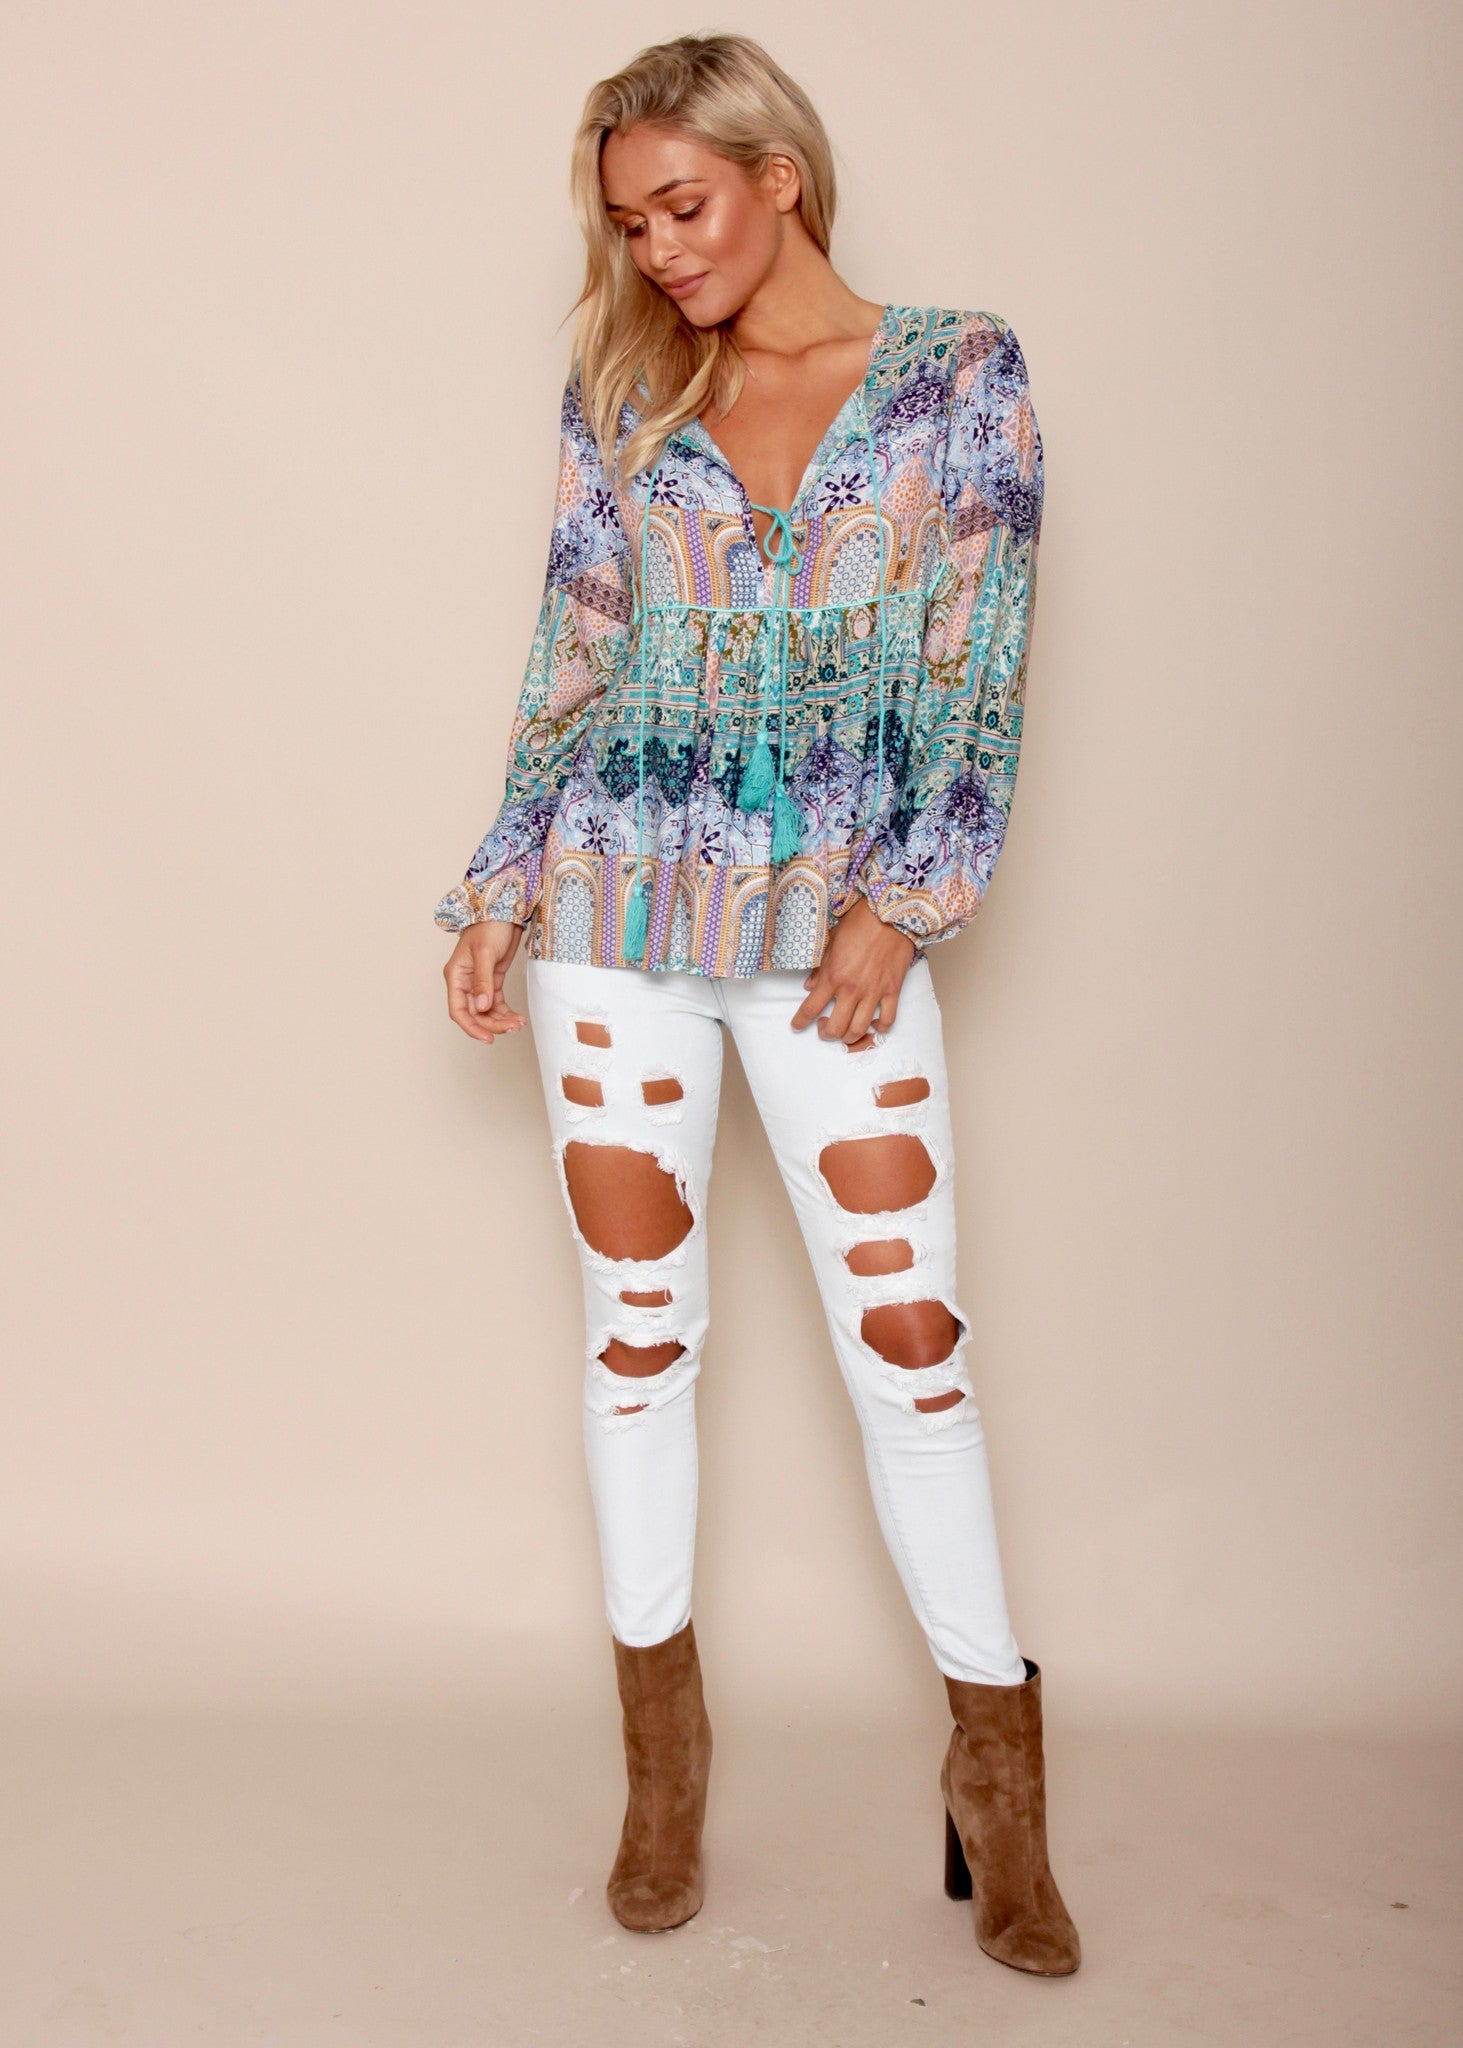 Freedom Reigns Blouse - Mosaic